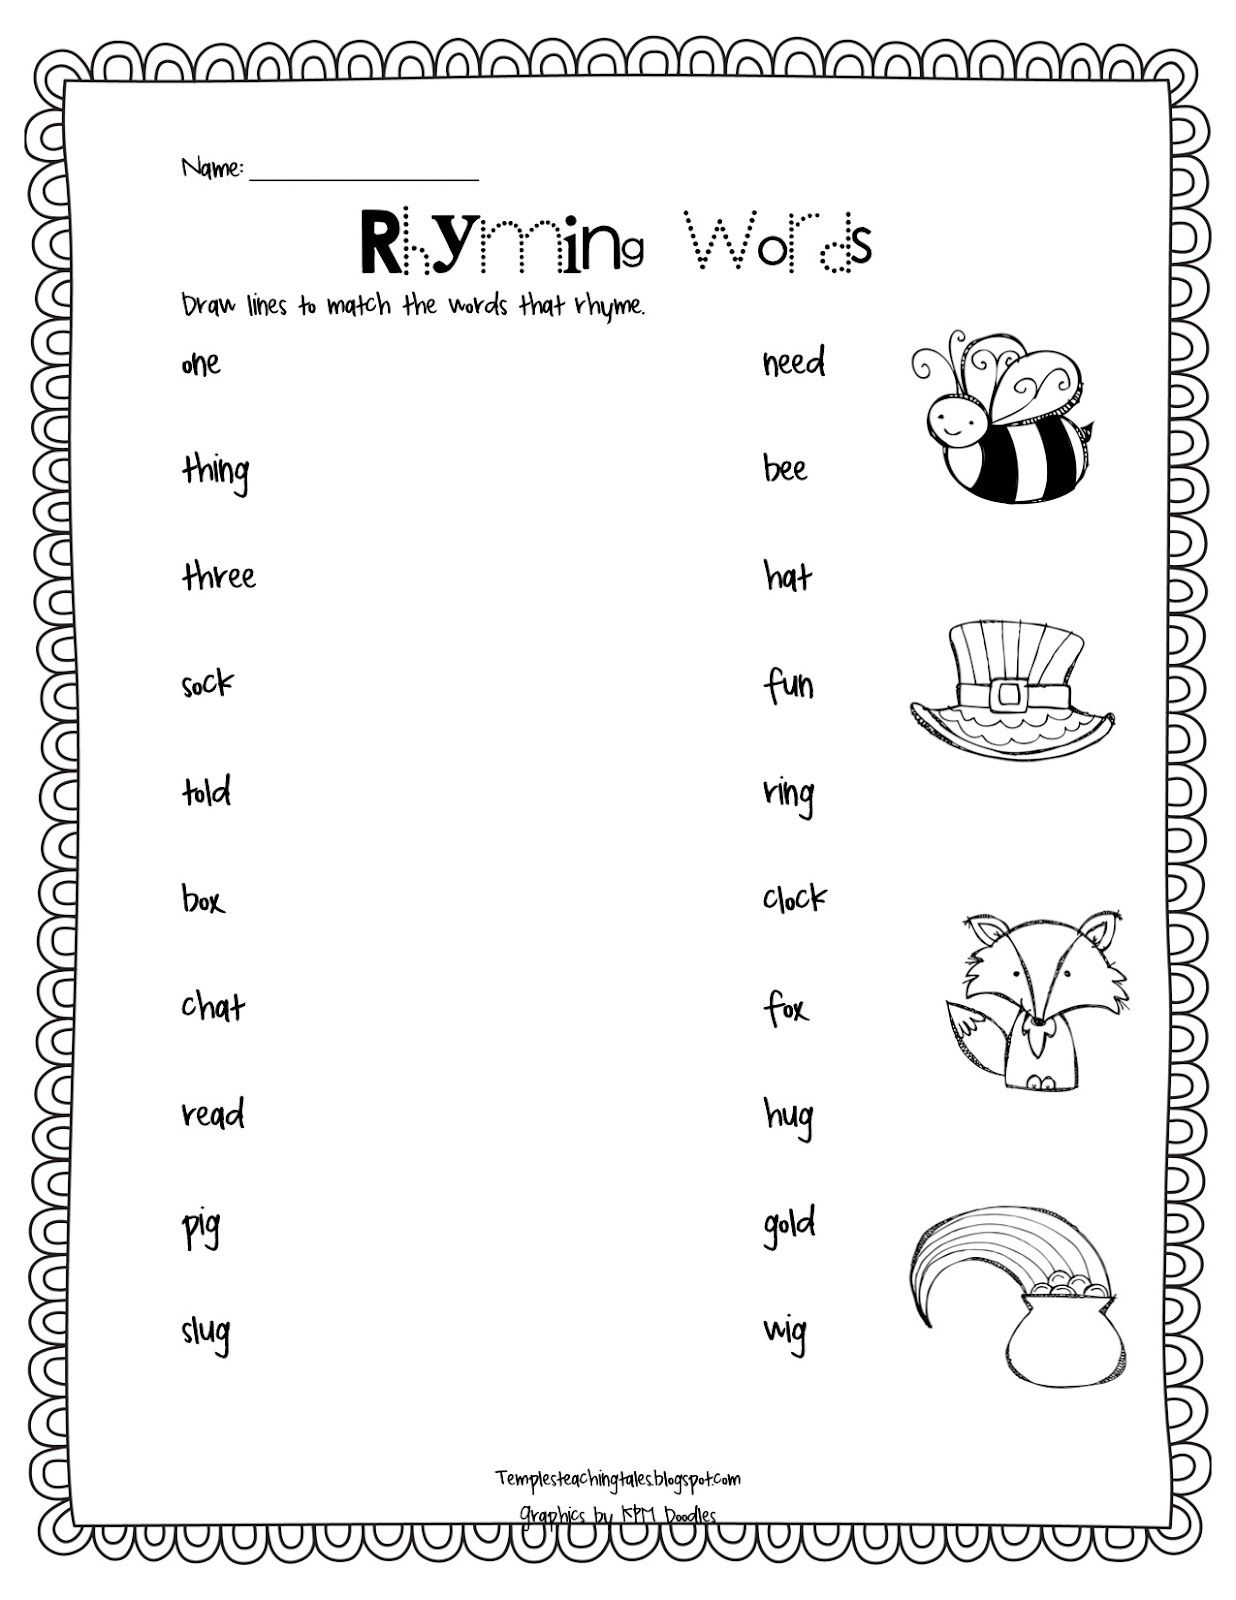 Worksheets List Of Rhyming Words In English rhyming words match up temples teaching tales for the classroom tales